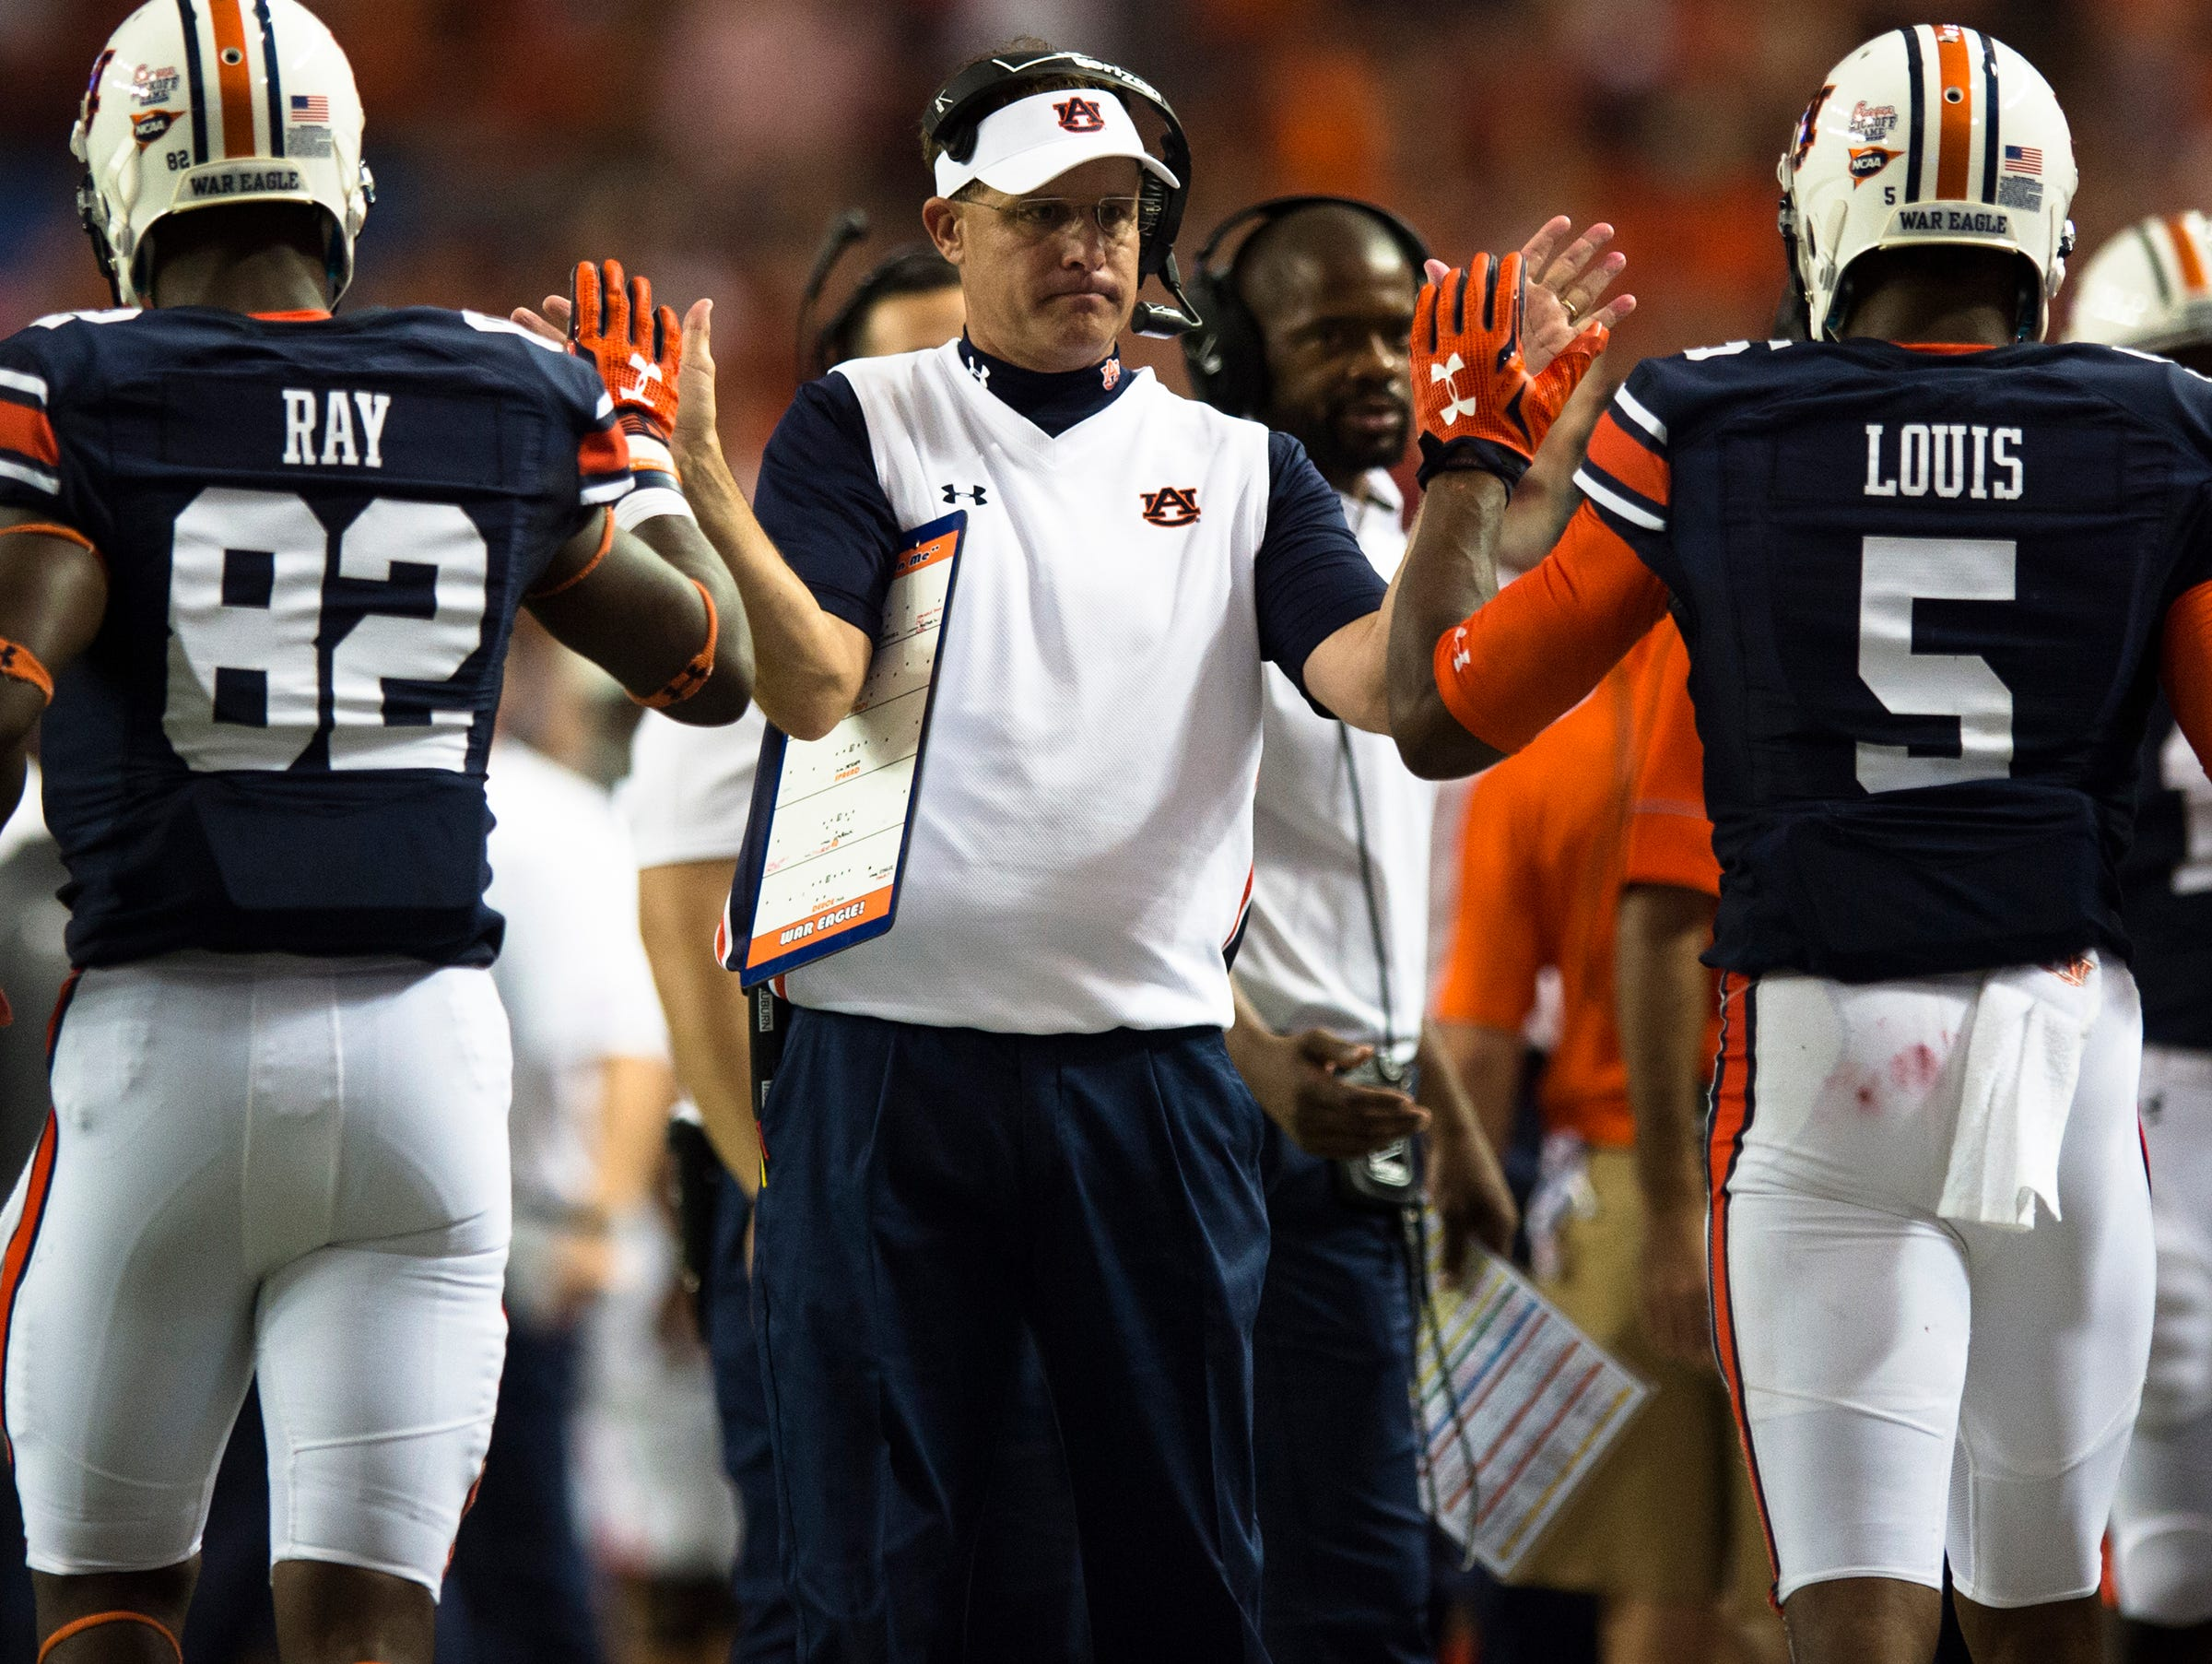 Auburn head coach Gus Malzahn high fives Auburn wide receiver Melvin Ray (82) and Auburn wide receiver Ricardo Louis (5) after Louis scored a touchdown during the NCAA football game between Auburn and Louisville on Saturday, Sept. 5, 2015, in at the Georgia Dome in Atlanta, Ga.